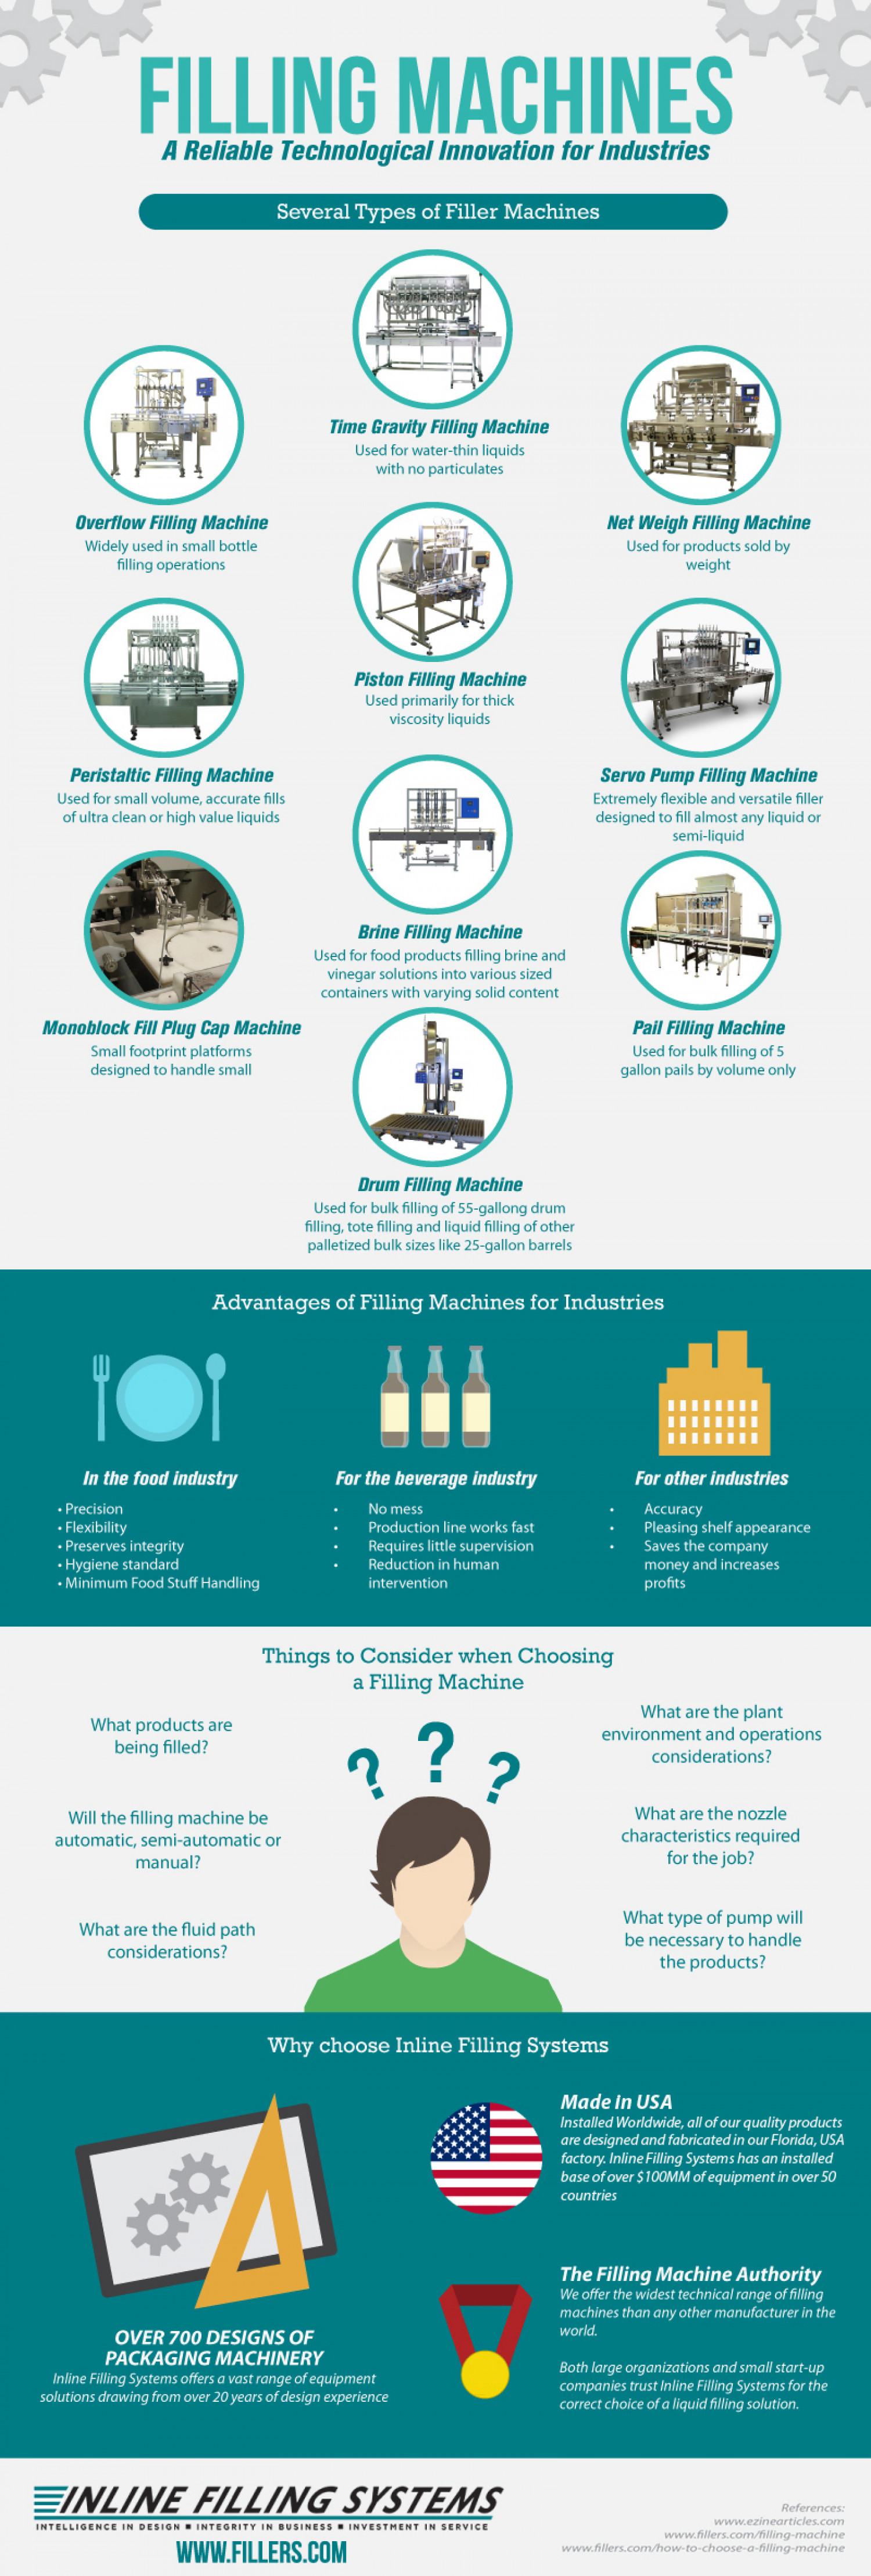 Filling Machines: A Reliable Technological Innovation for Industries Infographic